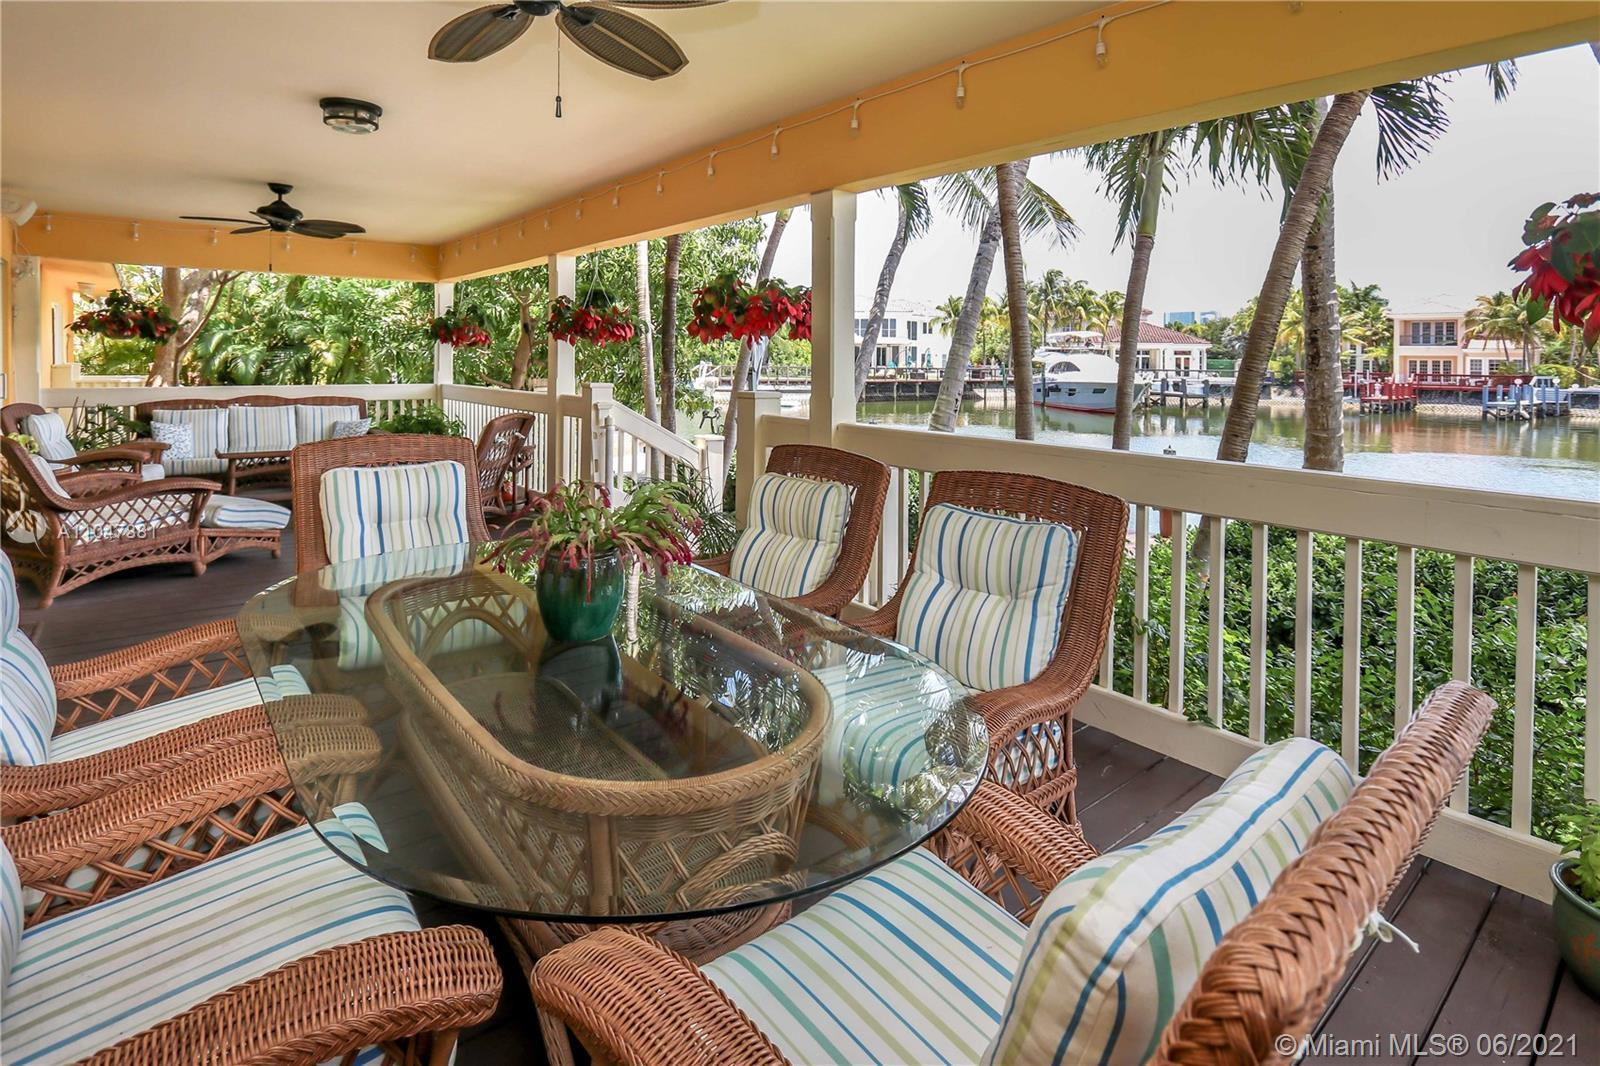 A tropical oasis in the Heart of Hollywood Lakes!~Claim one of the best waterfront properties near S